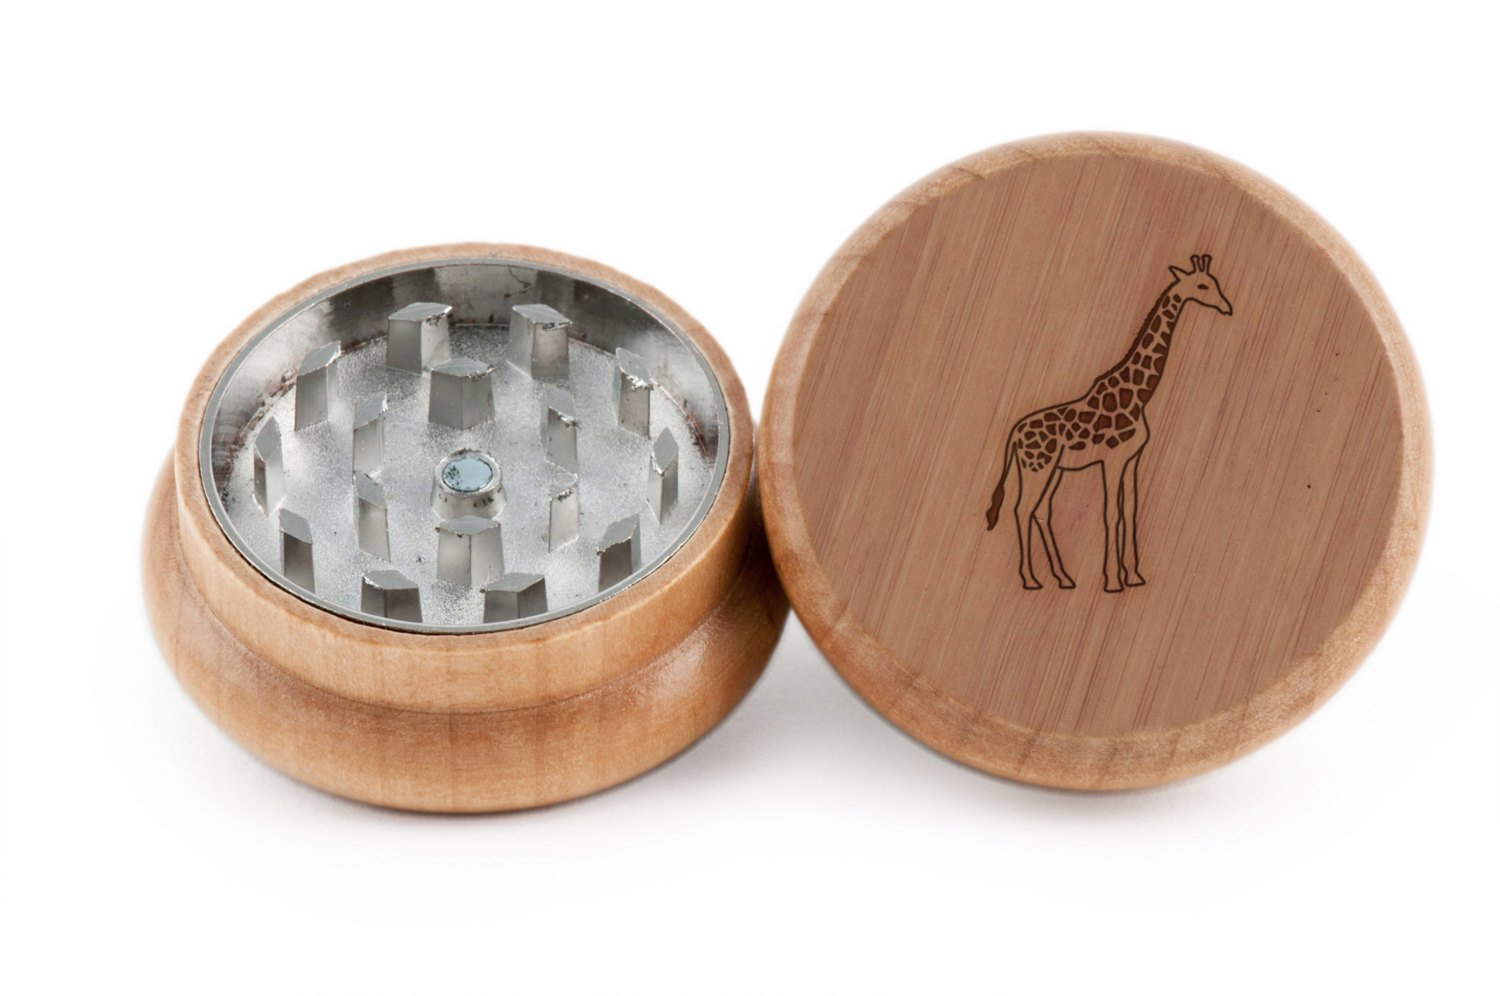 GRINDCANDY Spice And Herb Grinder - Laser Etched Giraffe Design - Manual Oak Pepper Grinder